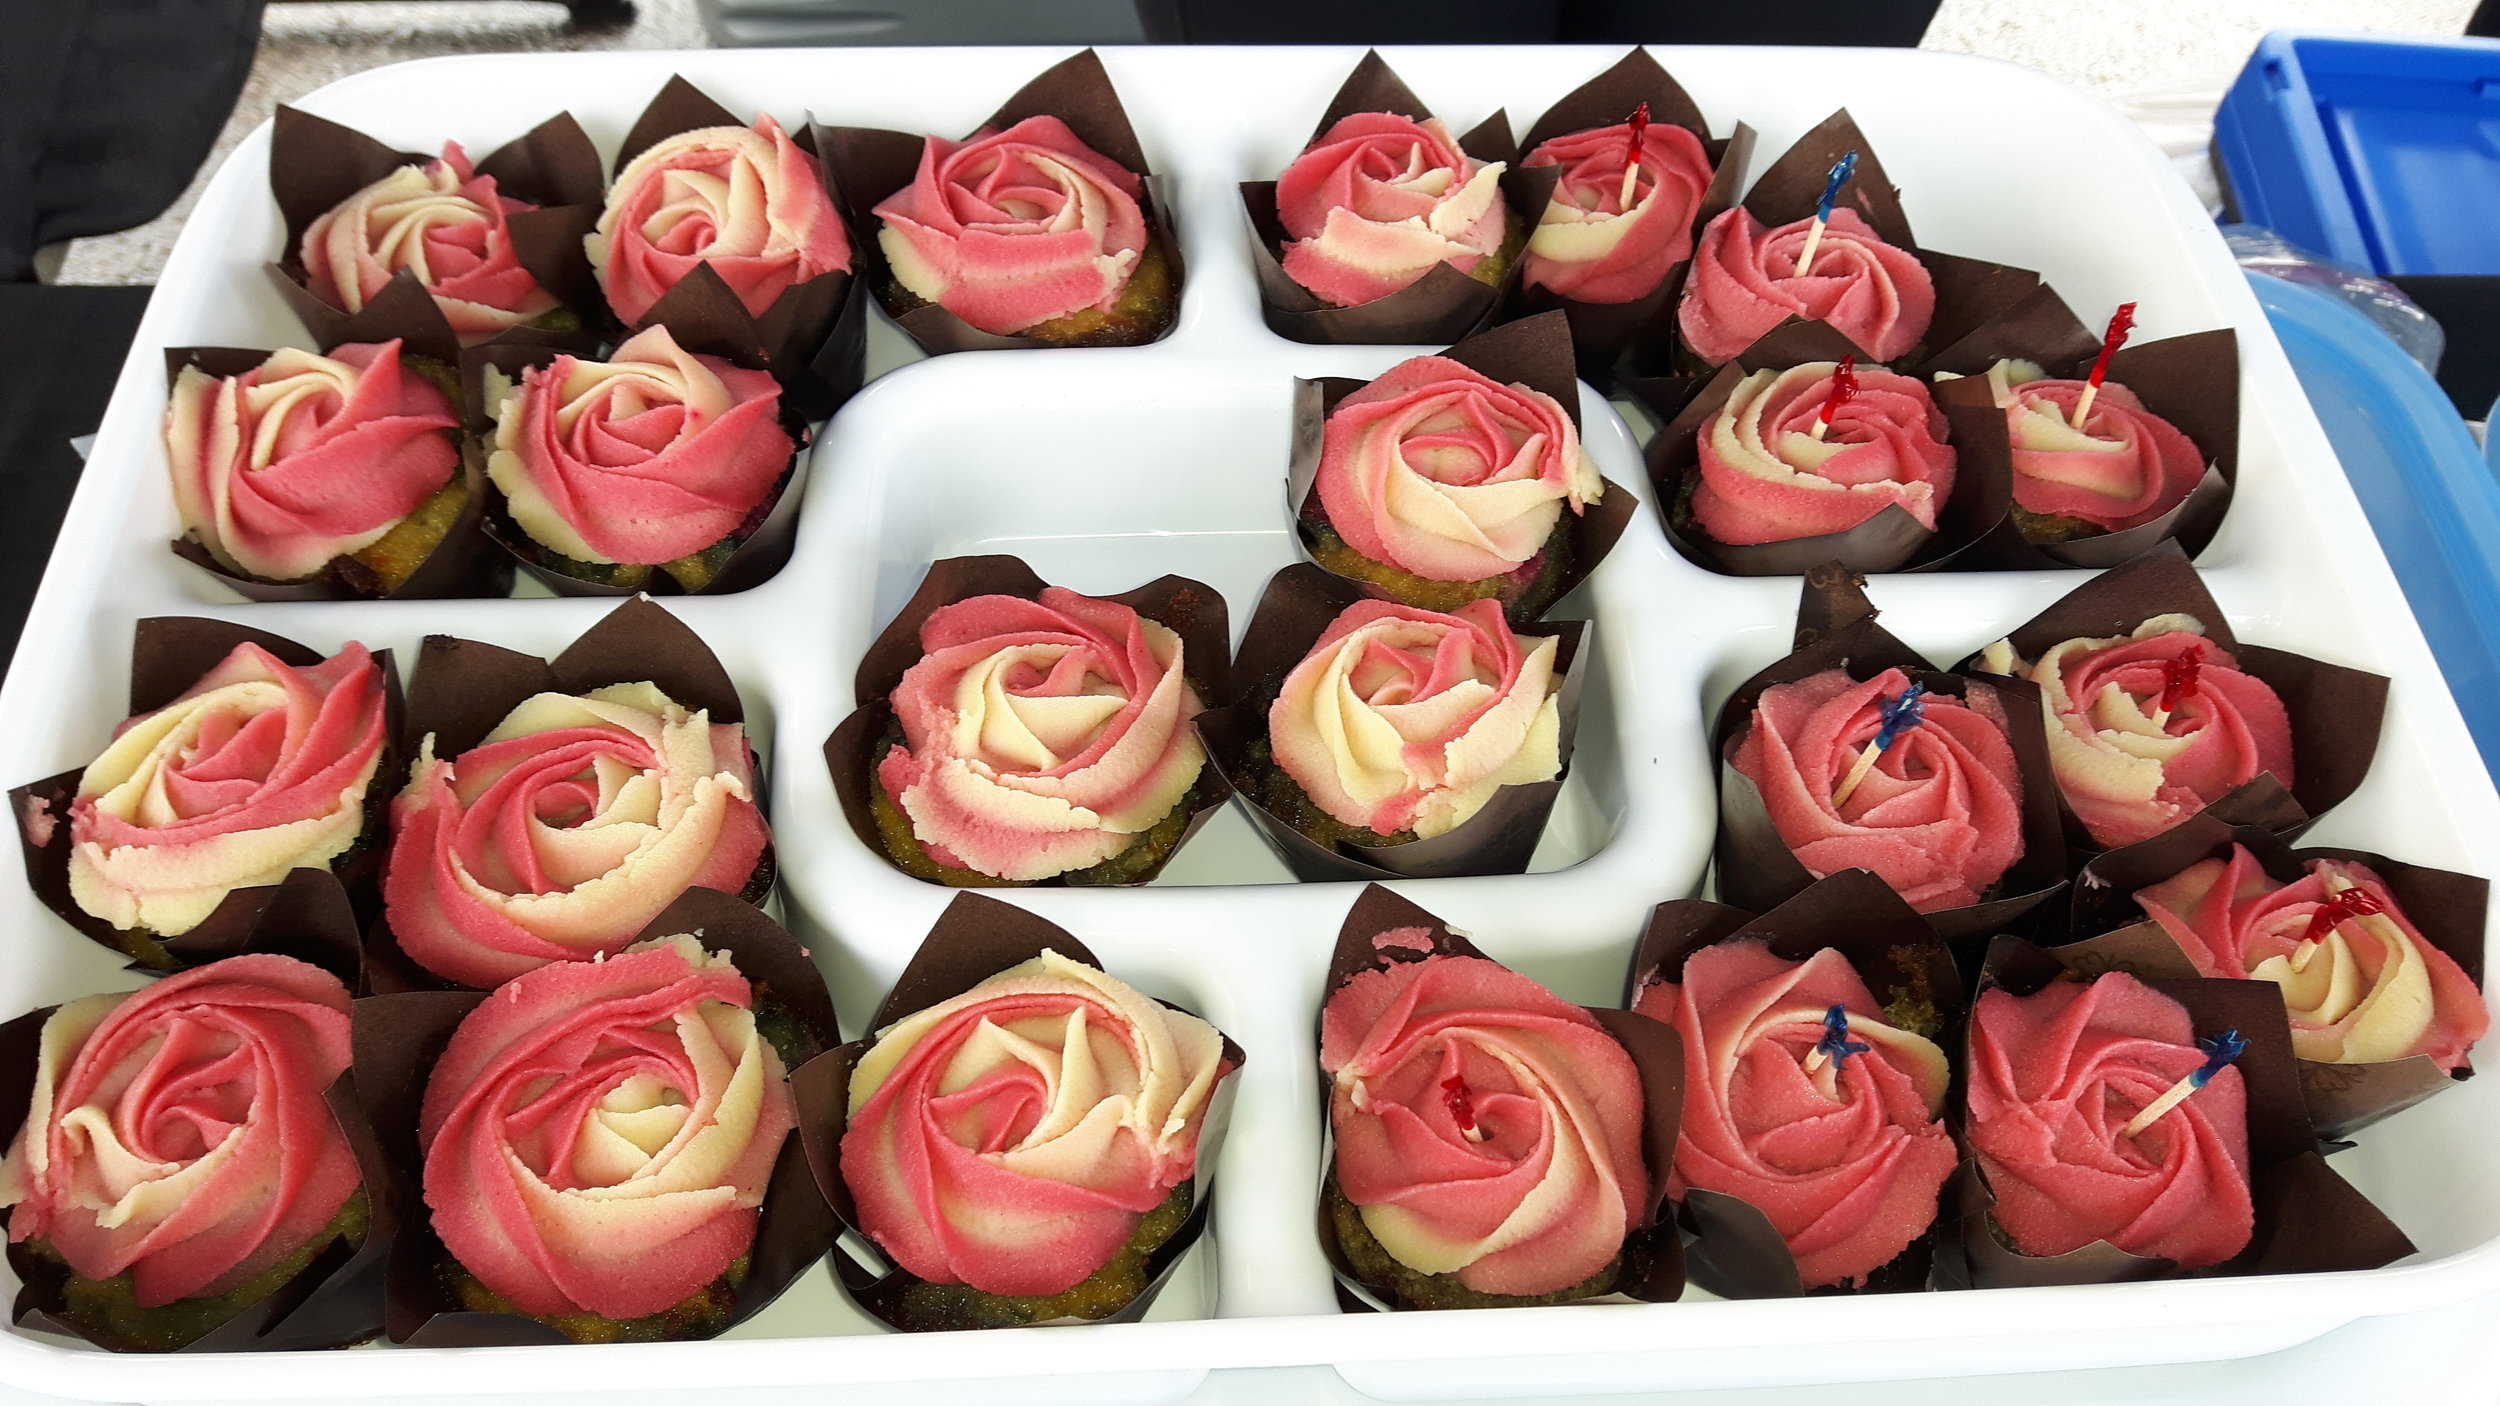 These gorgeous cupcakes are from Food in the Nud